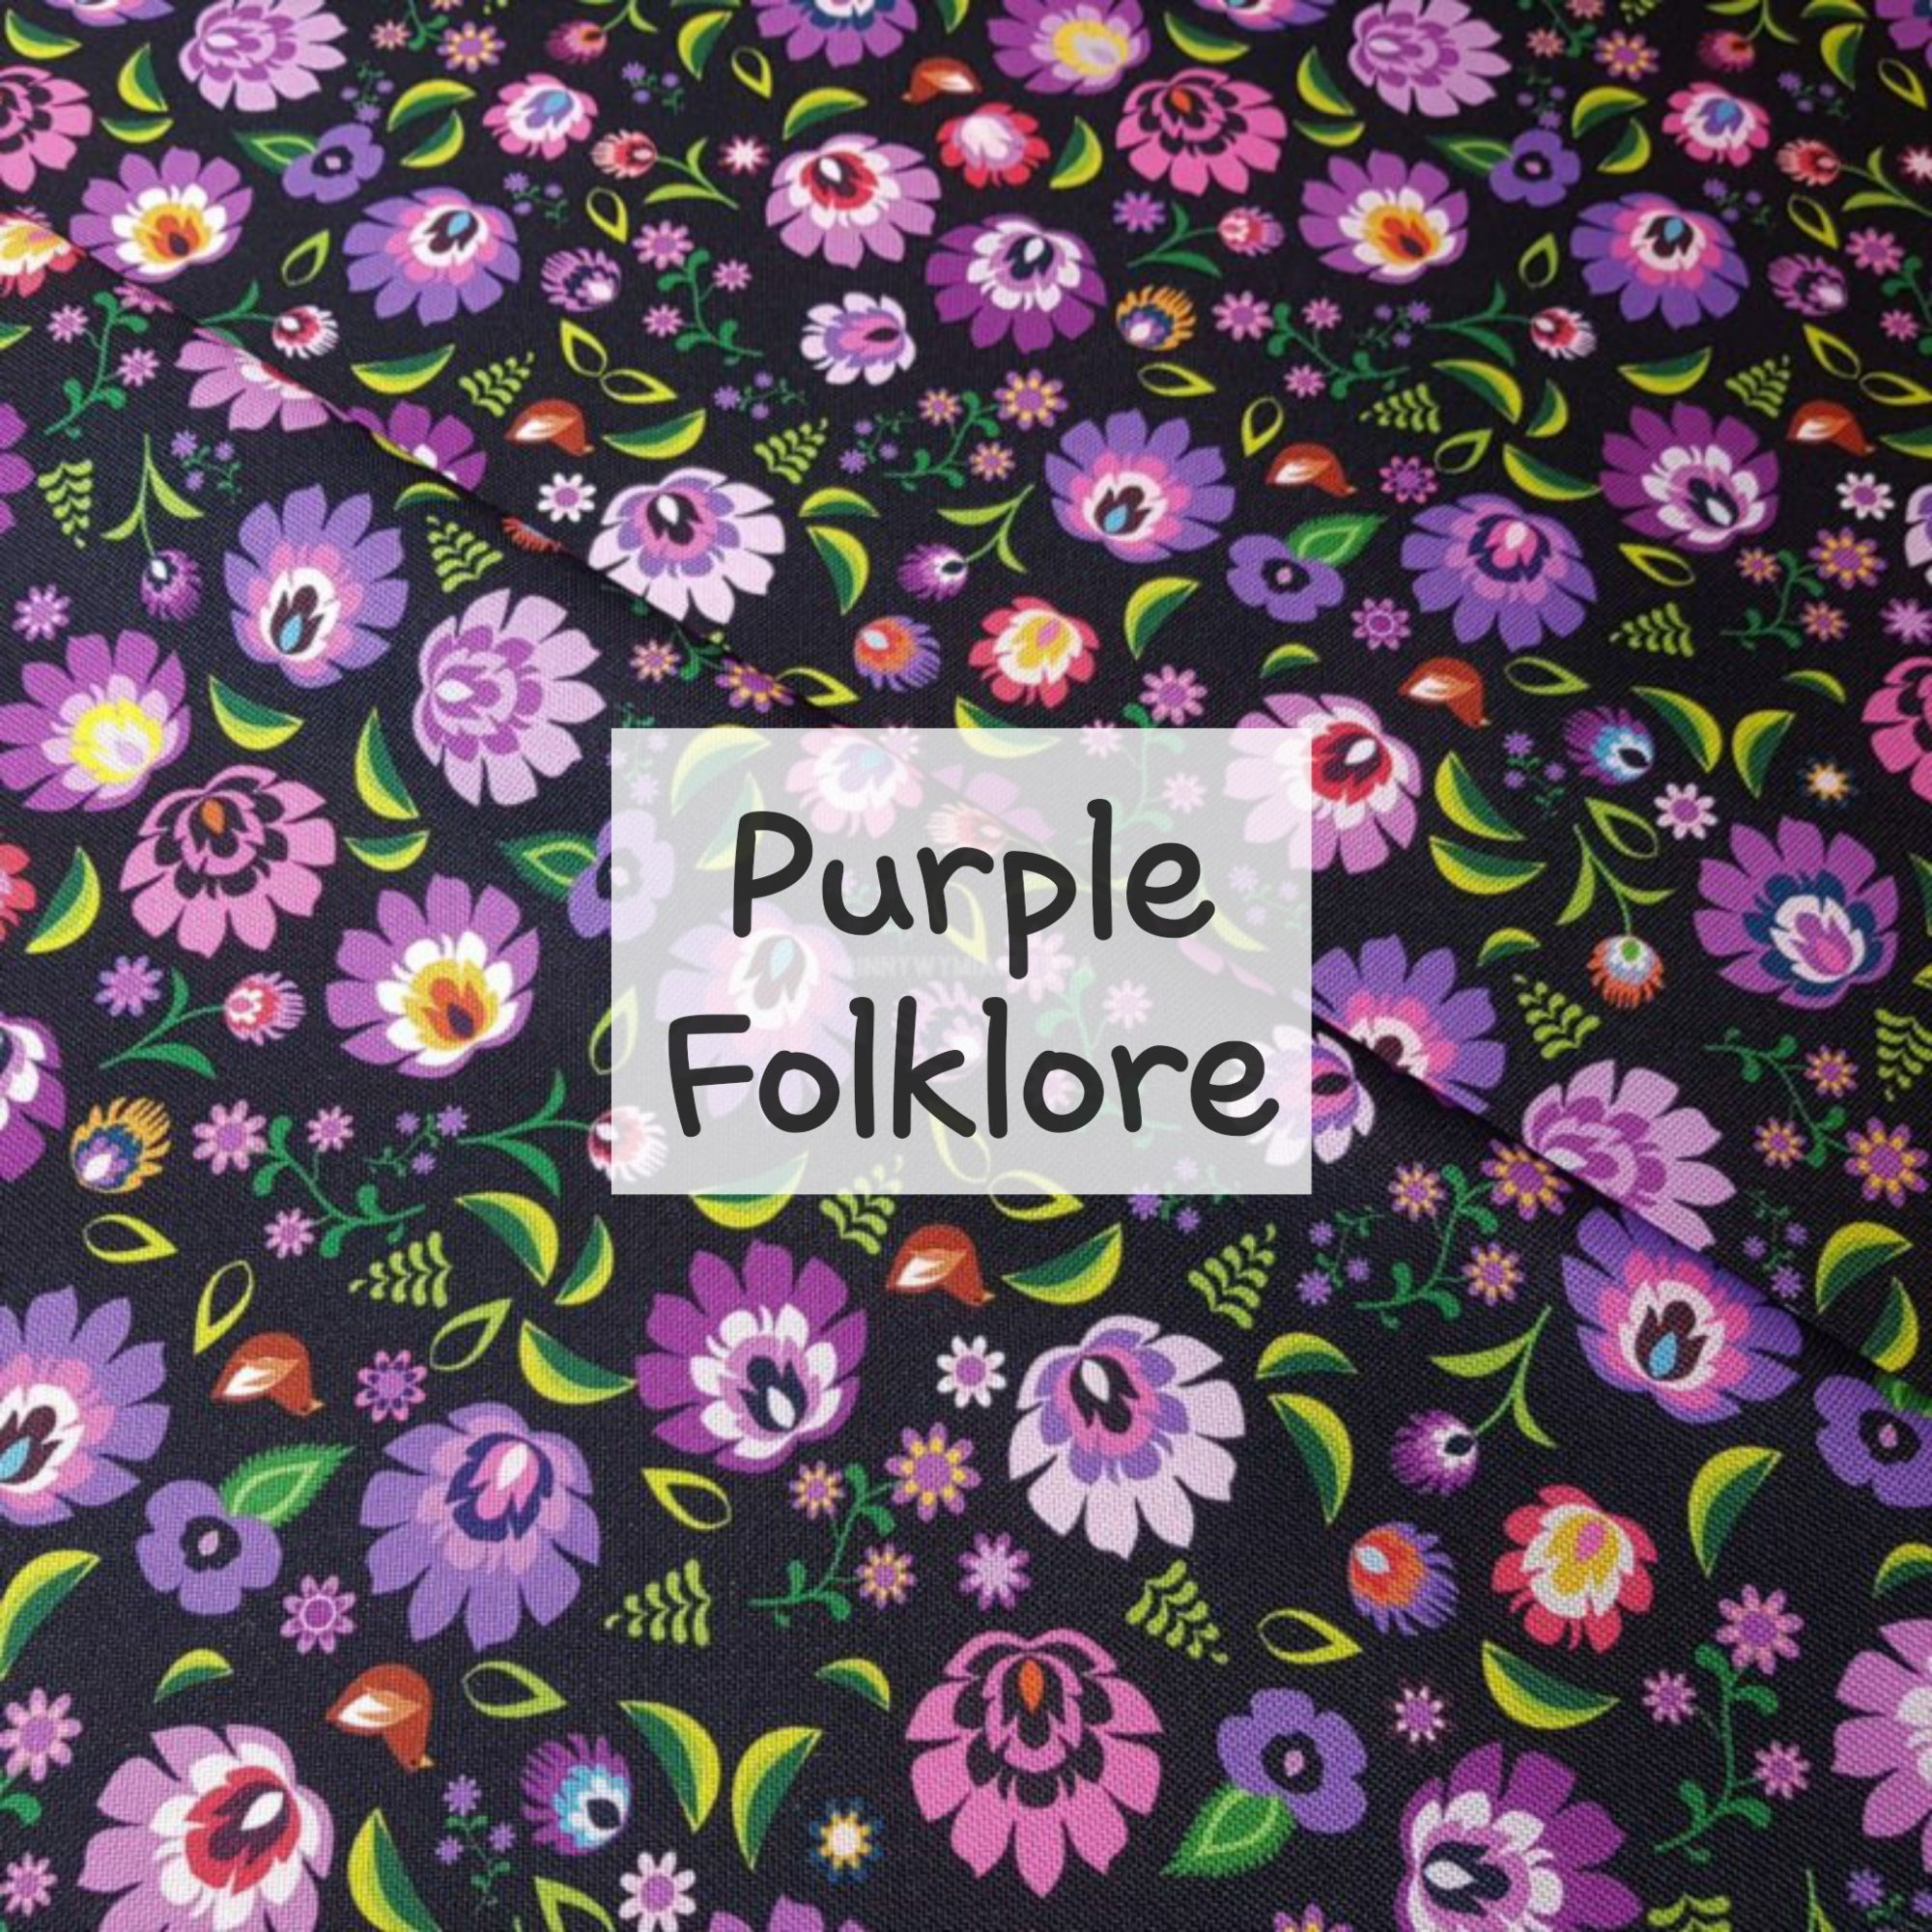 Purple Folklore